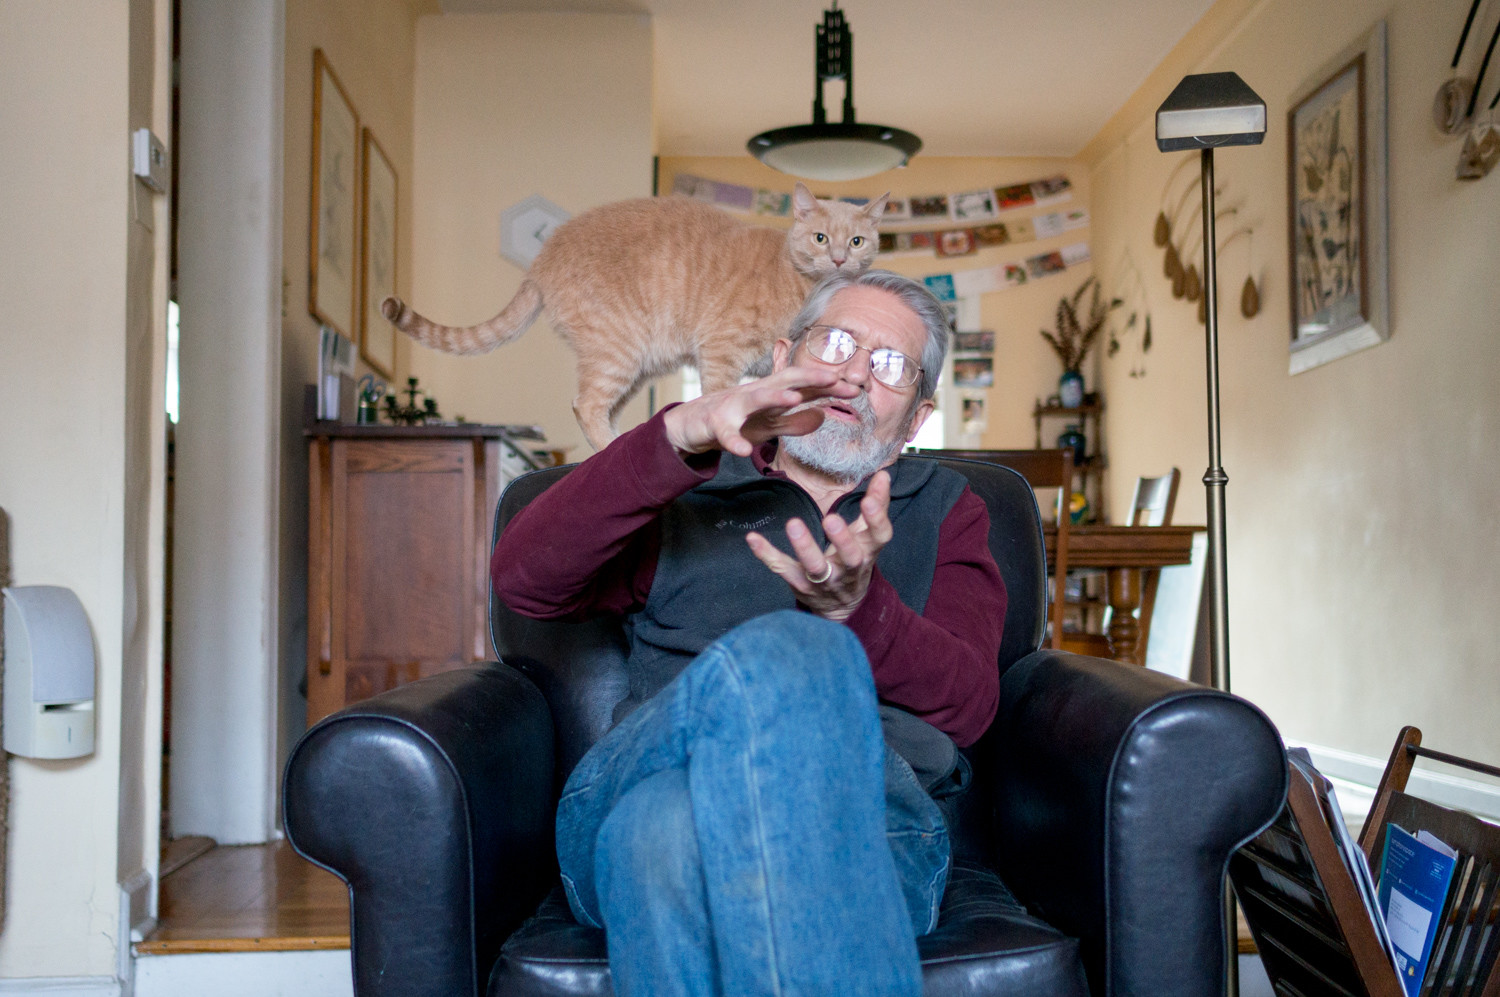 Ivan Braun shows approximately how big an urn for a cat would be while his 5-year-old cat Archie stands behind him. Braun is a professional woodturner who makes a variety of objects including bowls, vases and urns for cats.